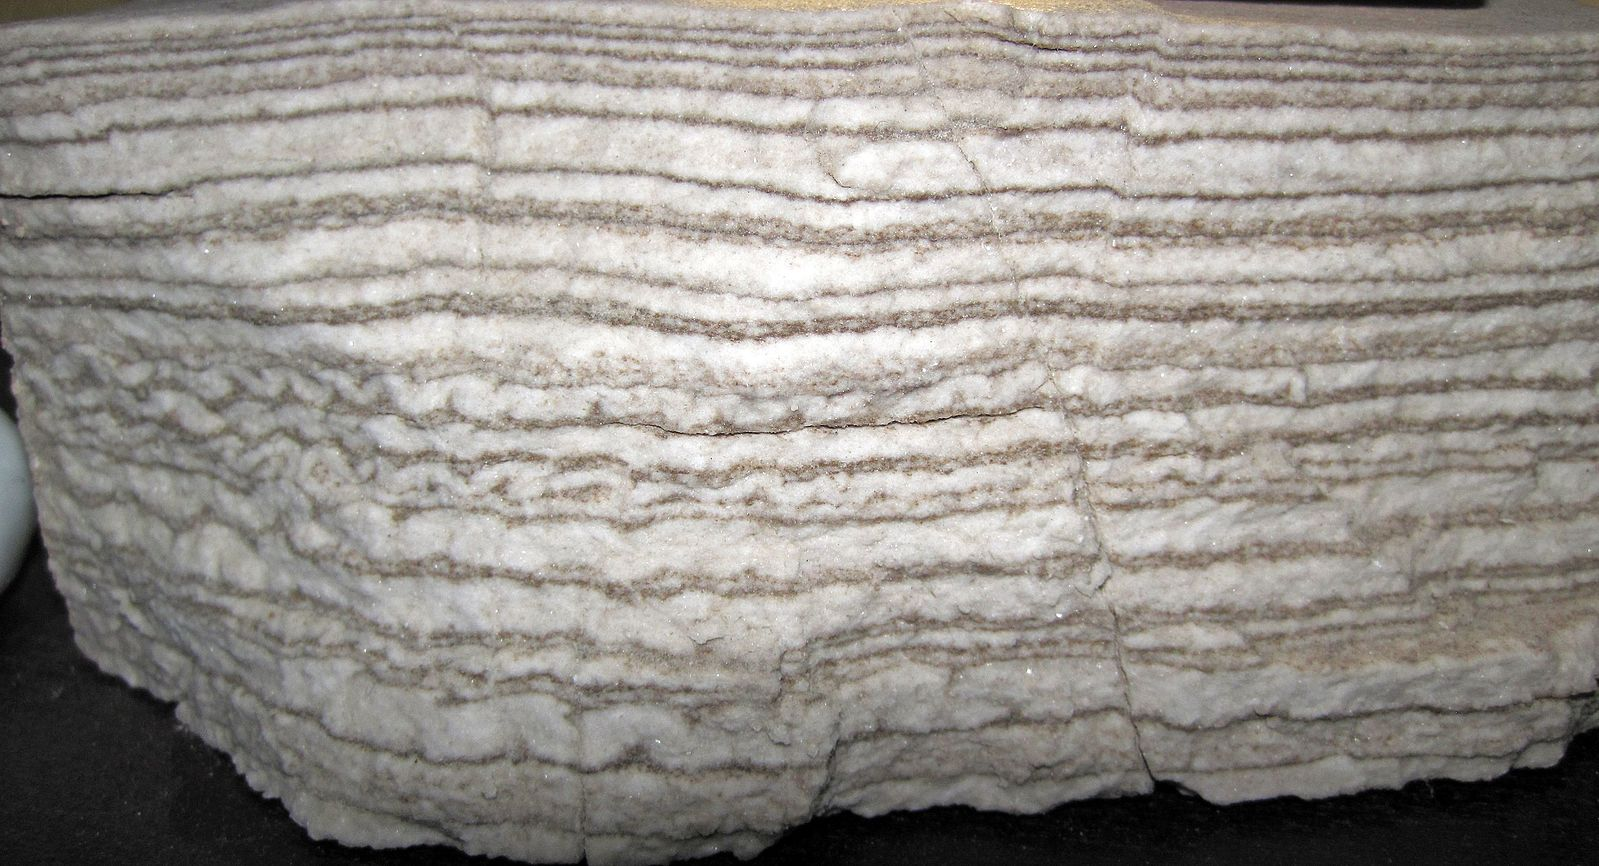 The rock has many light-colored layers.